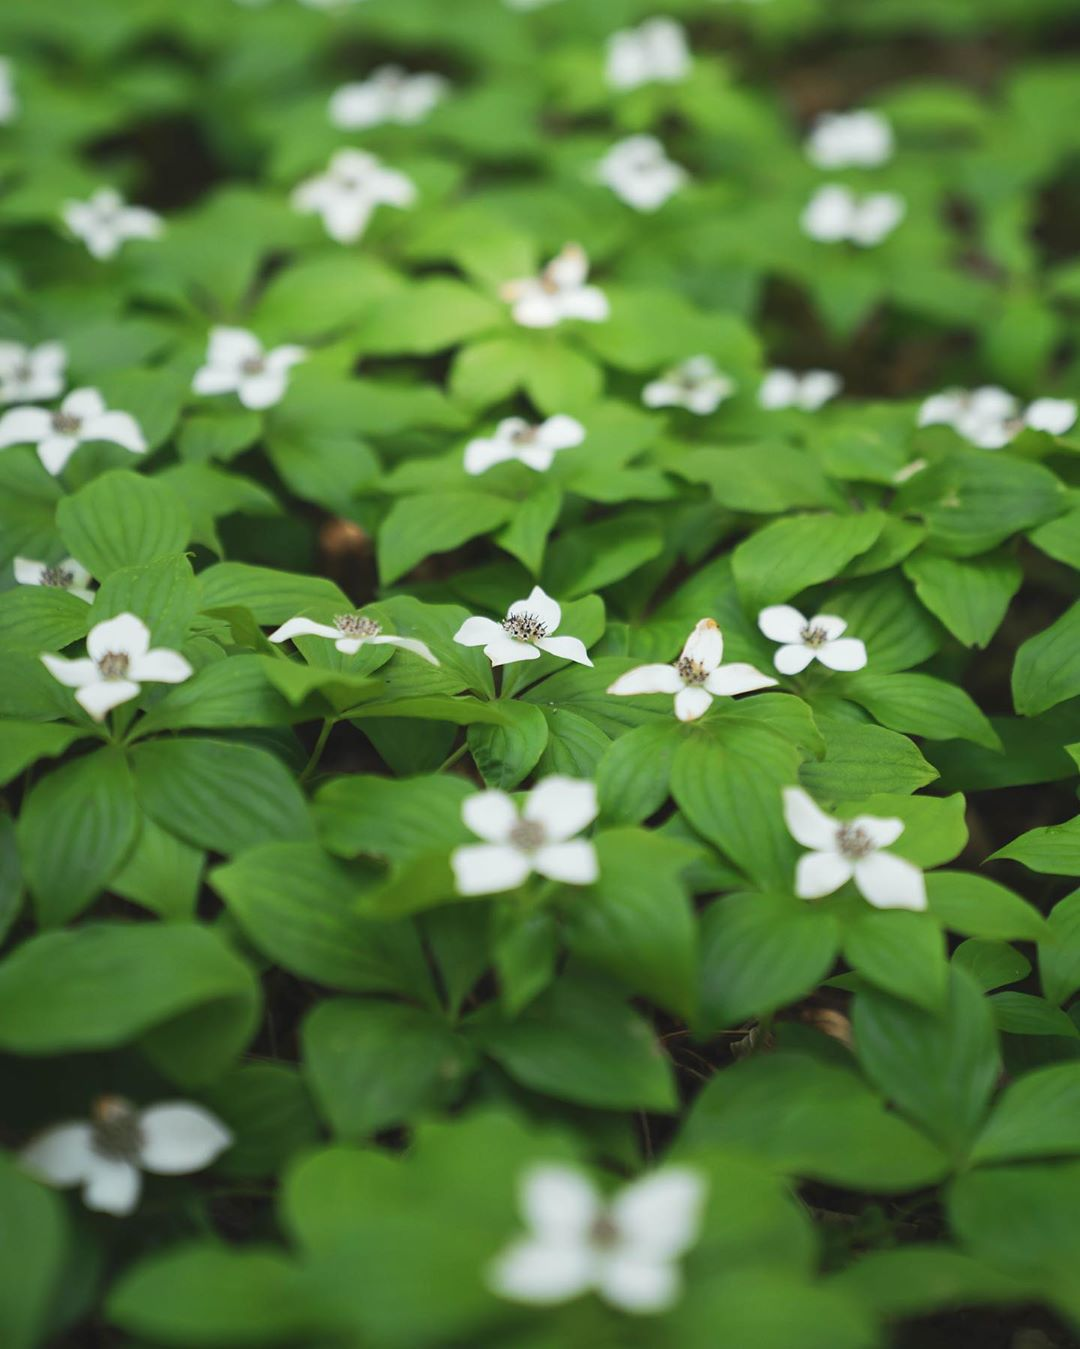 Bunchberry flowers, little white four petaled flowers dotted over green vegetation